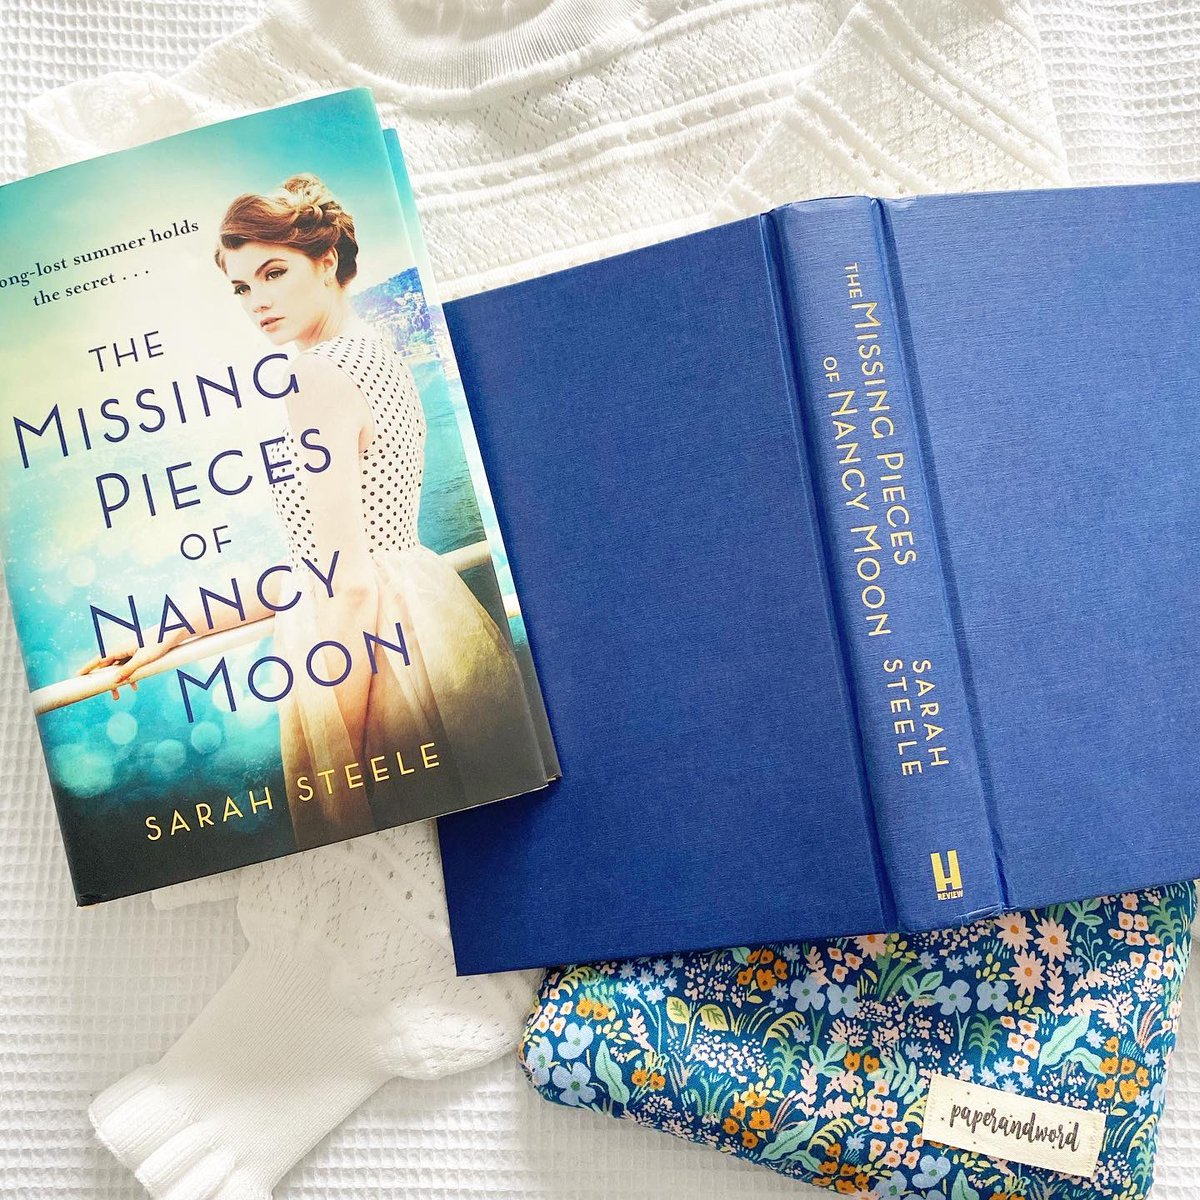 It's my stop on the social media blast for #TheMissingPiecesofNancyMoon #FollowNancyMoon  https://t.co/jbOorDaT9p  I'm also sharing a sneak peek of the prologue below! 💙👗  @headlinepg @sarah_l_steele https://t.co/oWGVVdvPK3